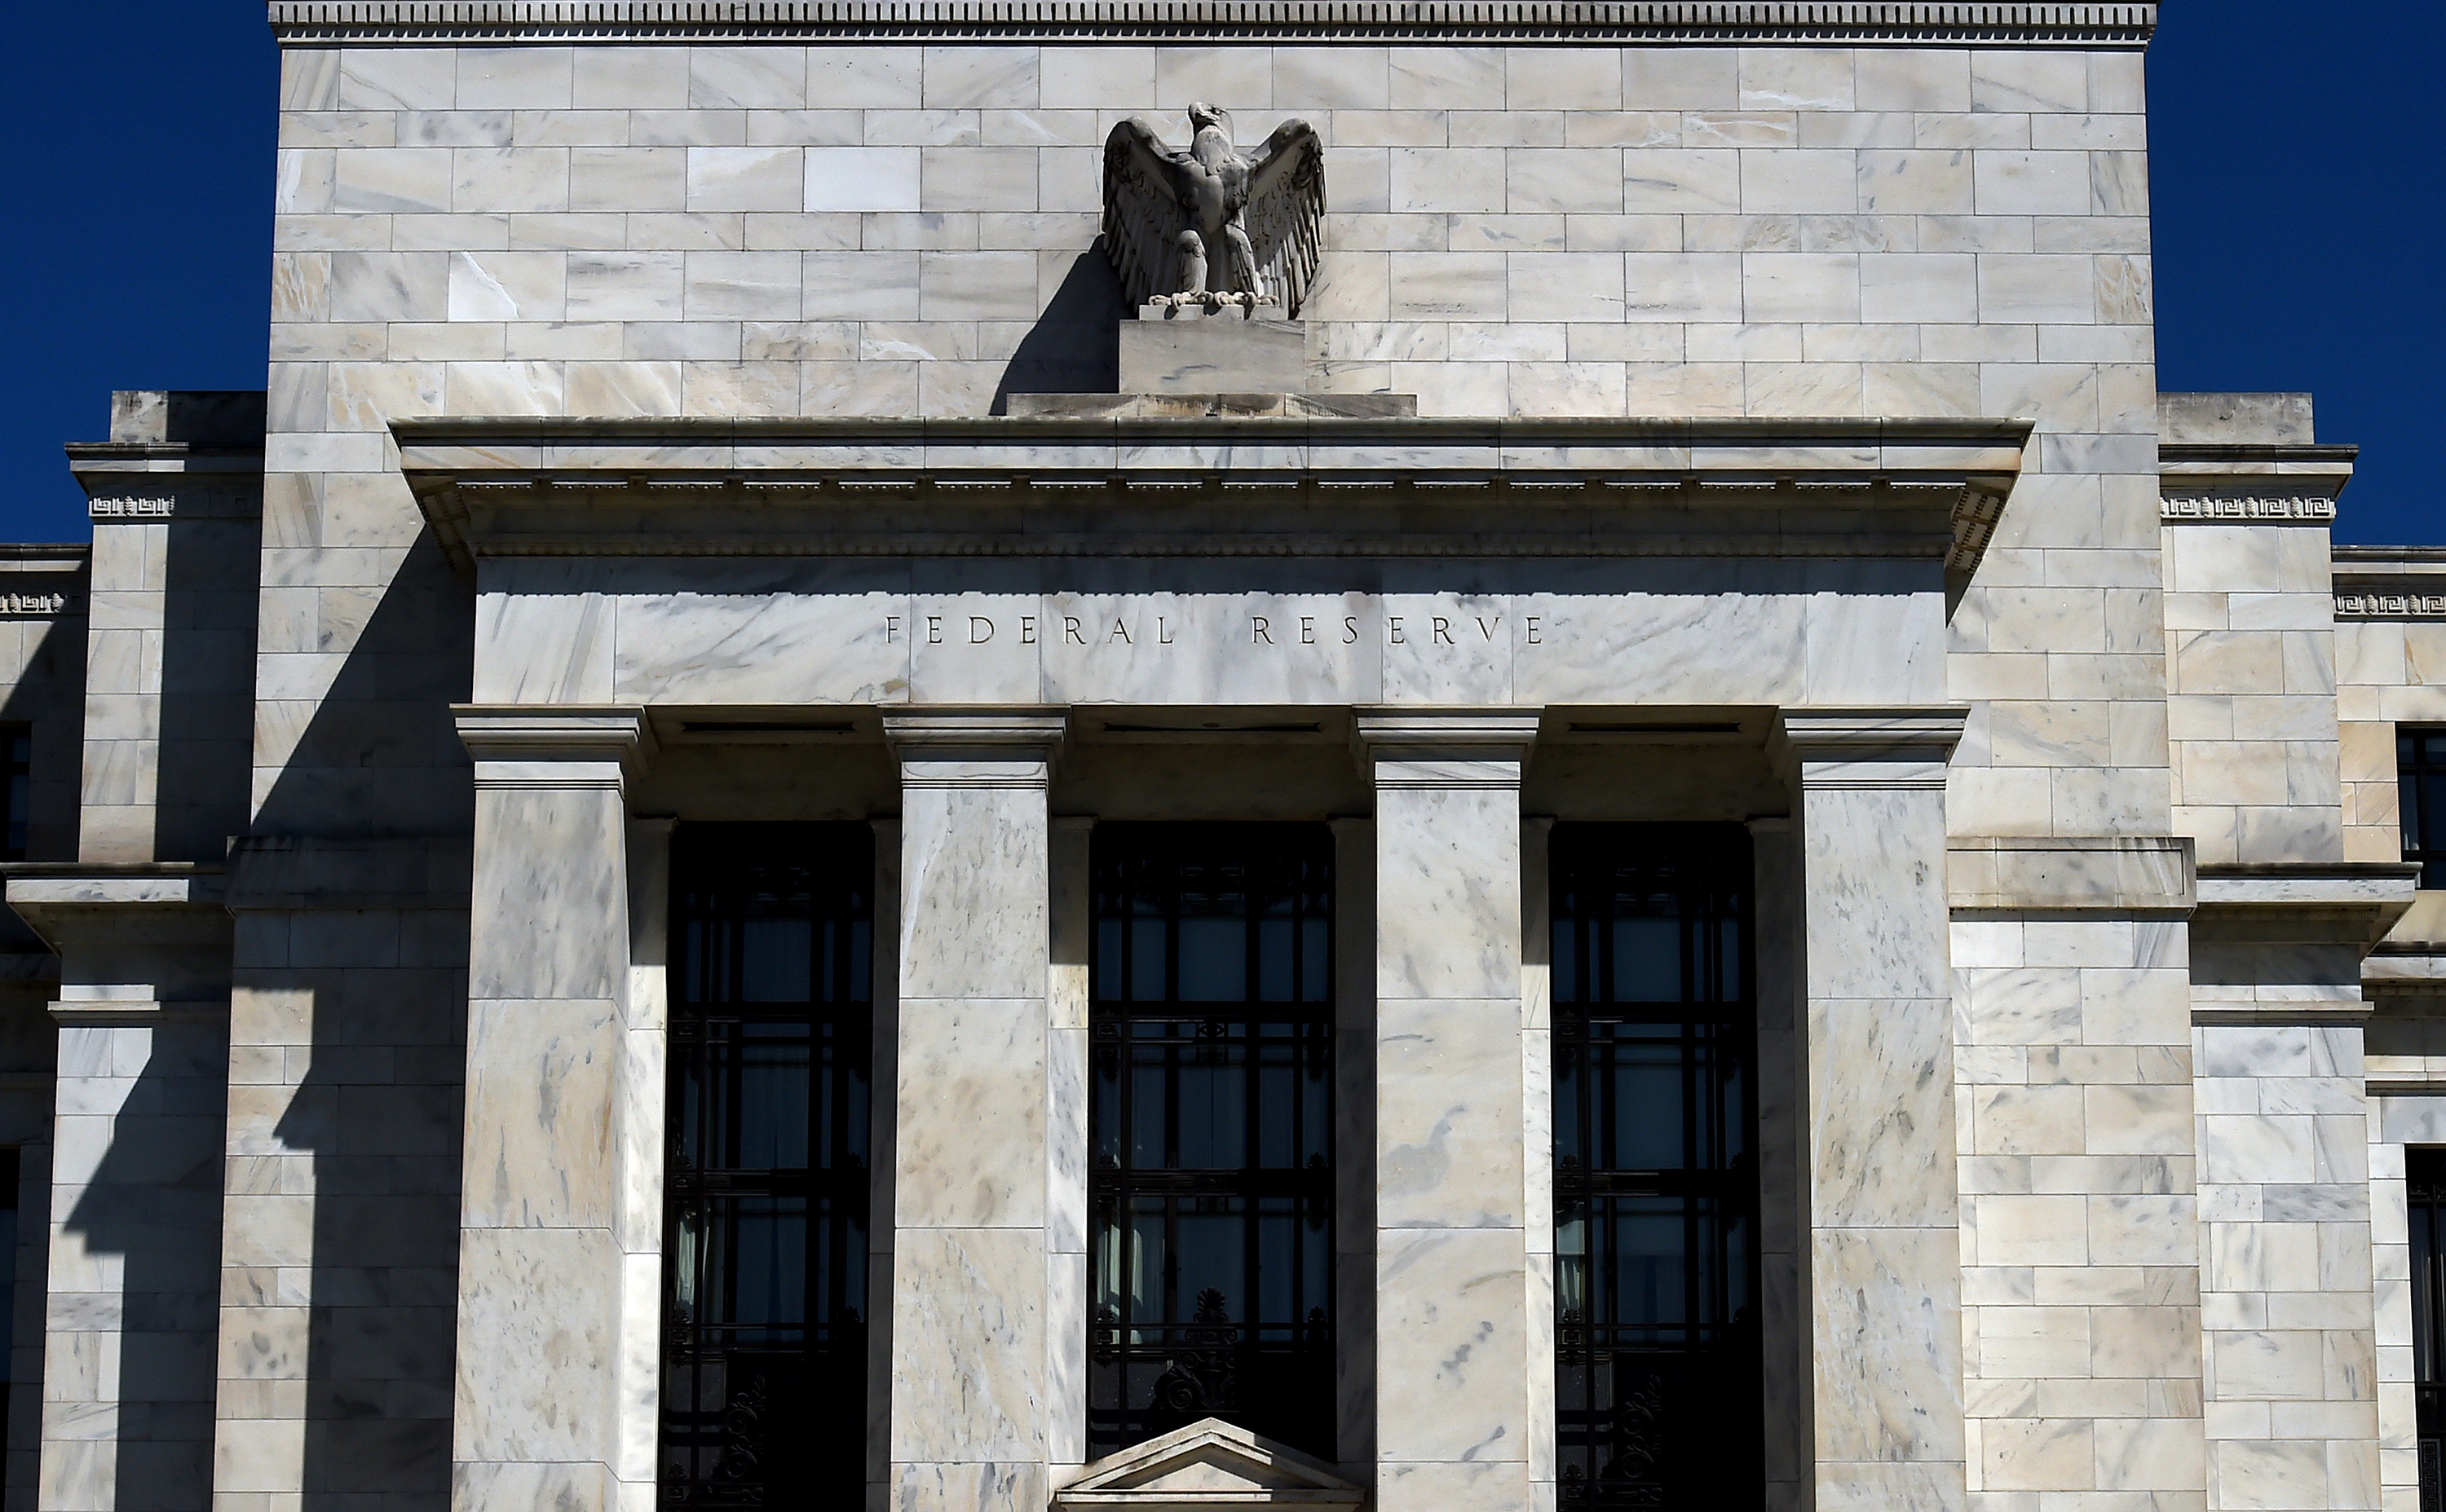 The Fed just unleashed another $2.3 trillion to support the economy